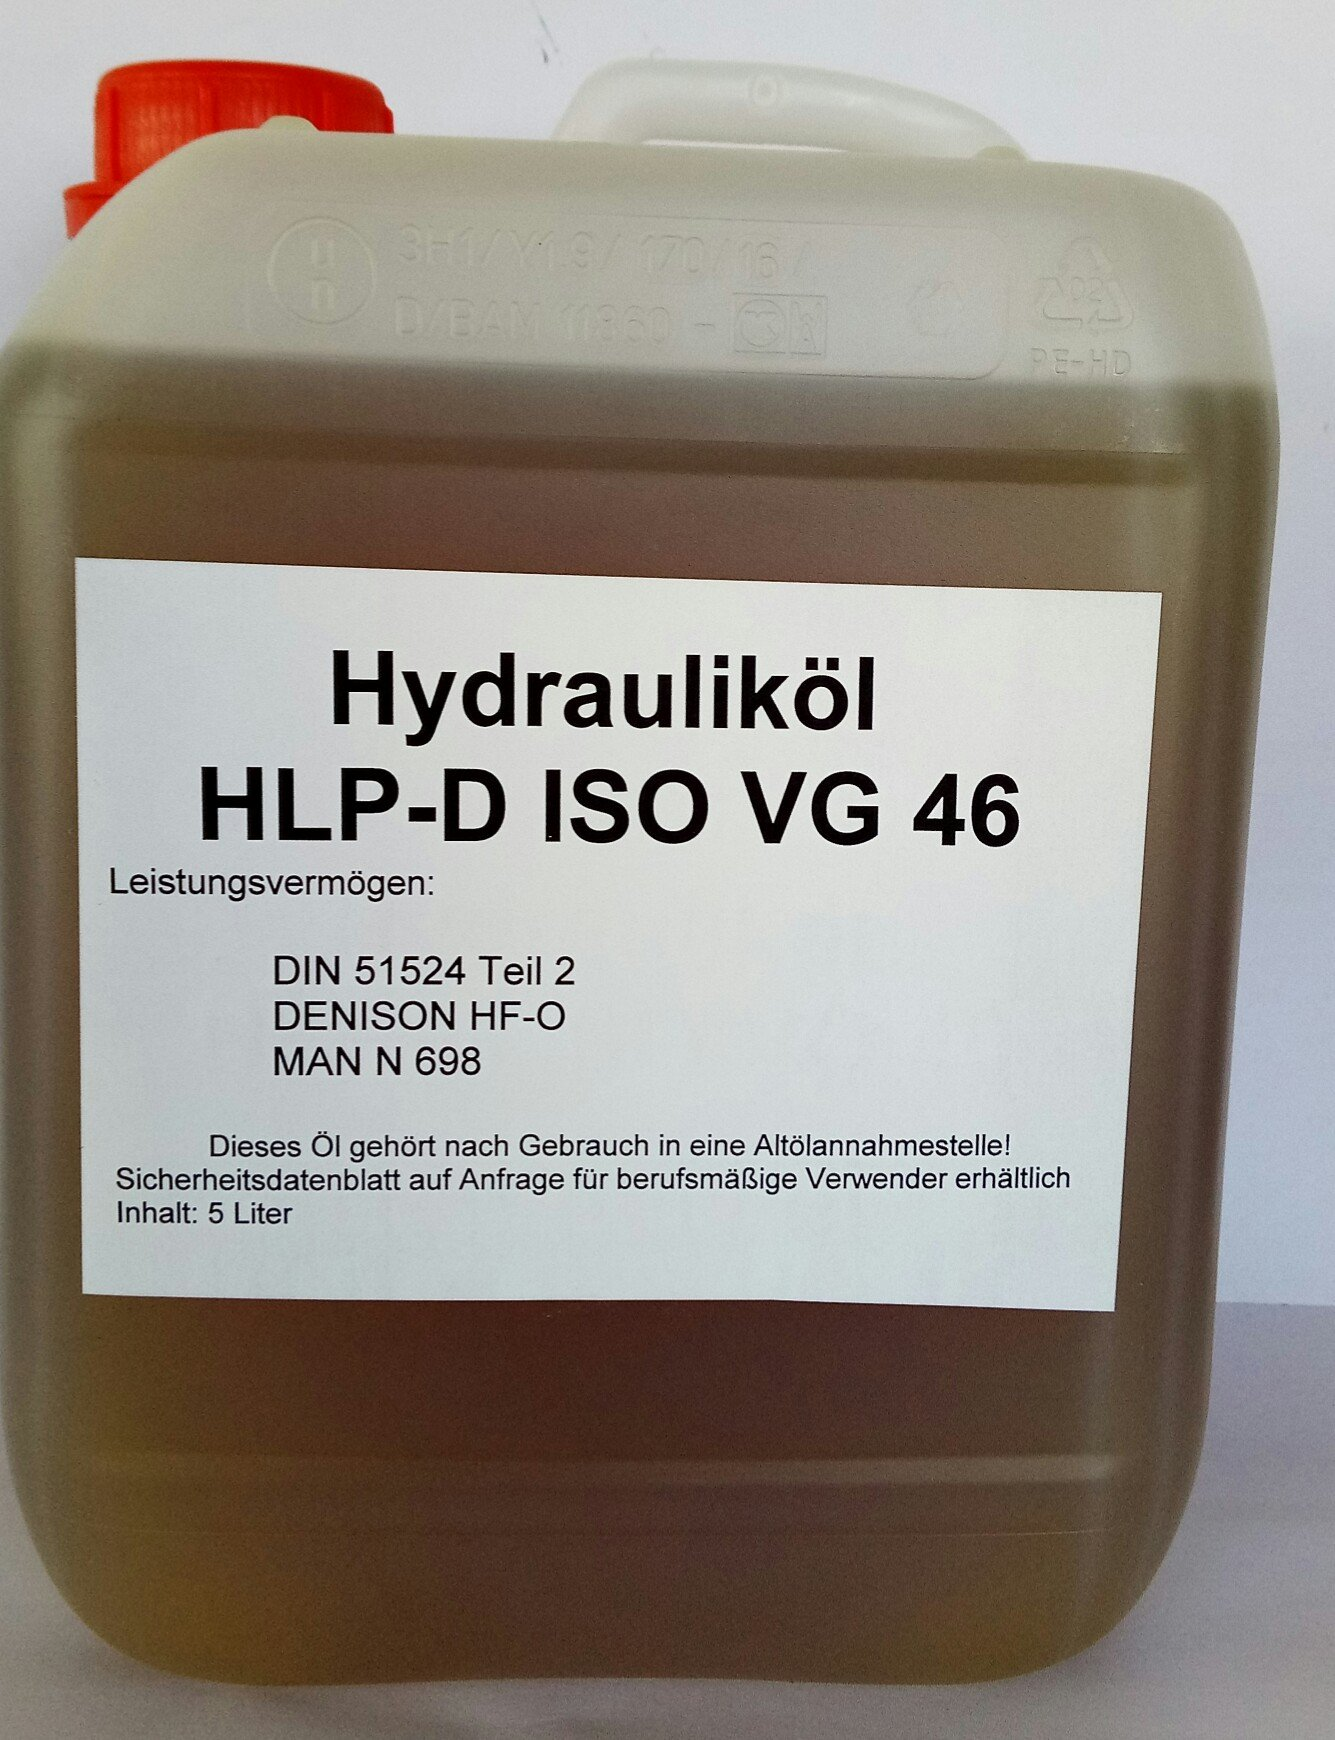 East Germany OIL Hydrauliköl HLP D 46 (Kanister 5 Liter) von East Germany OIL